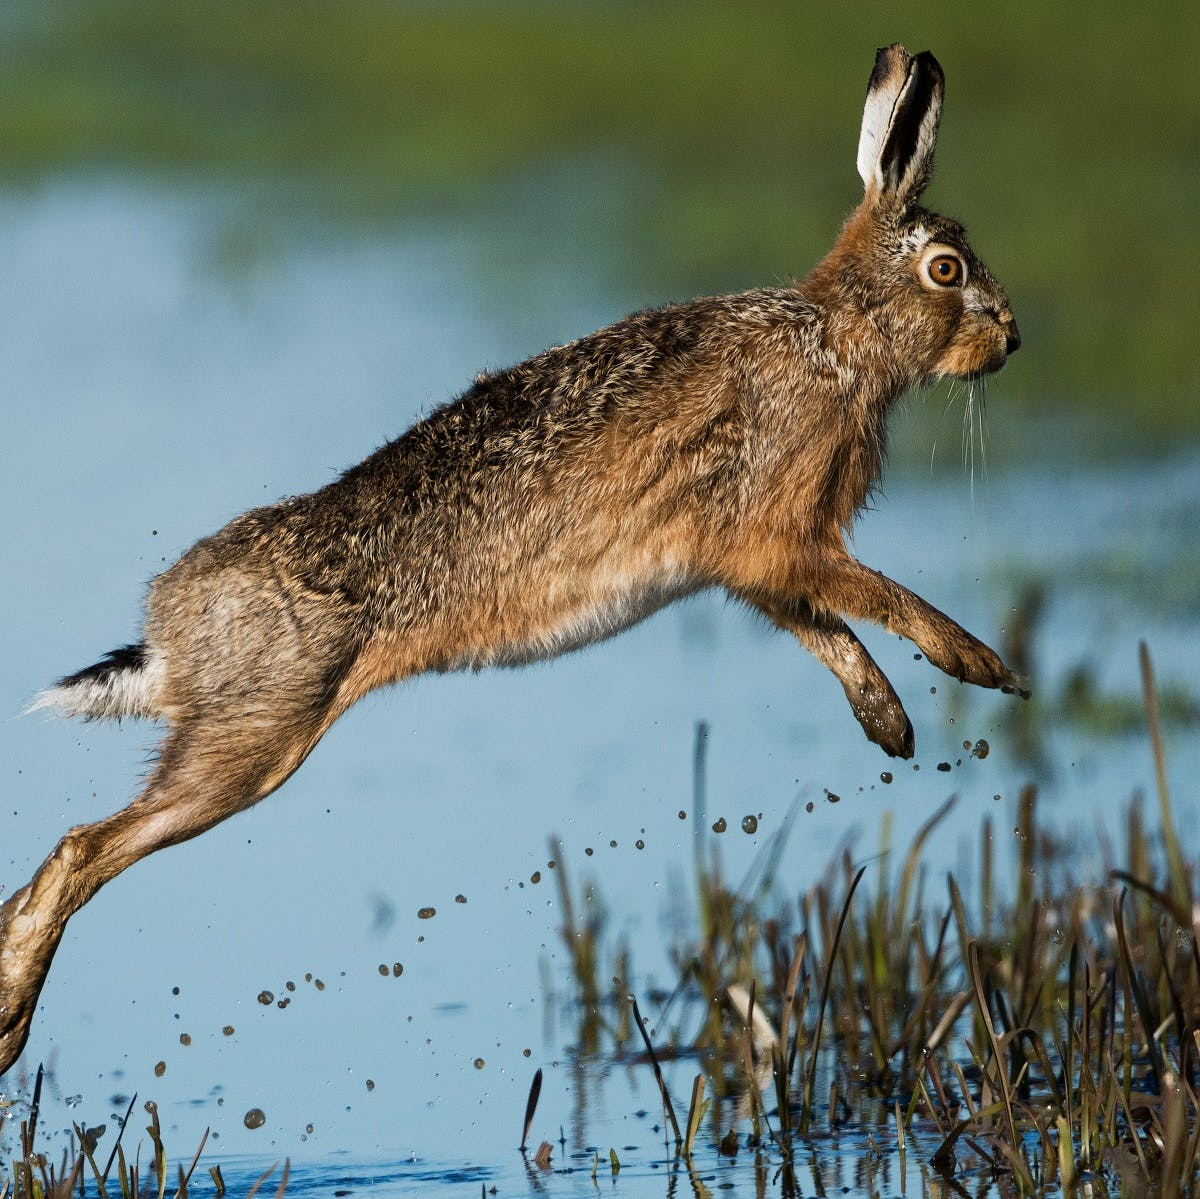 A  hare jumps through water. The hare is synonymous with Irish culture and wildlife in Ireland